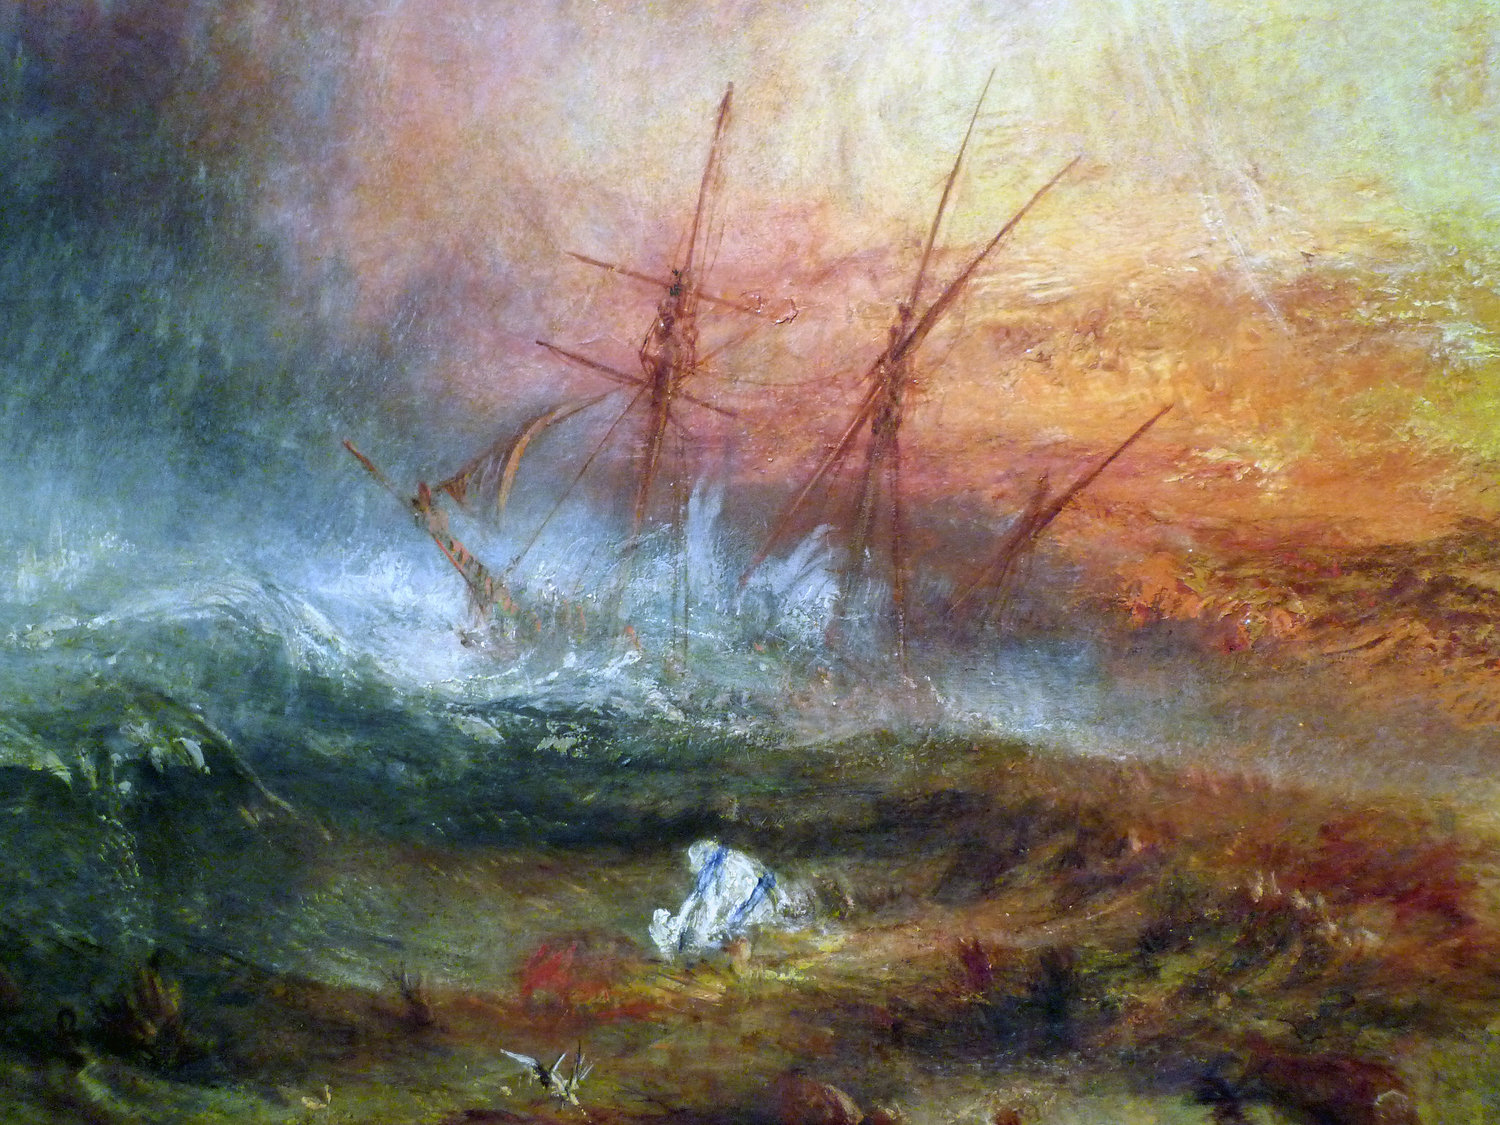 """JMW Turner, """"Slave Ship (Slavers Throwing Overboard the Dead and Dying, Typhoon Coming On)"""" (1840). Oil on canvas. 35 3/4 in (90.8 cm) x 48 1/4in. Located at the  Museum of Fine Arts, Boston."""